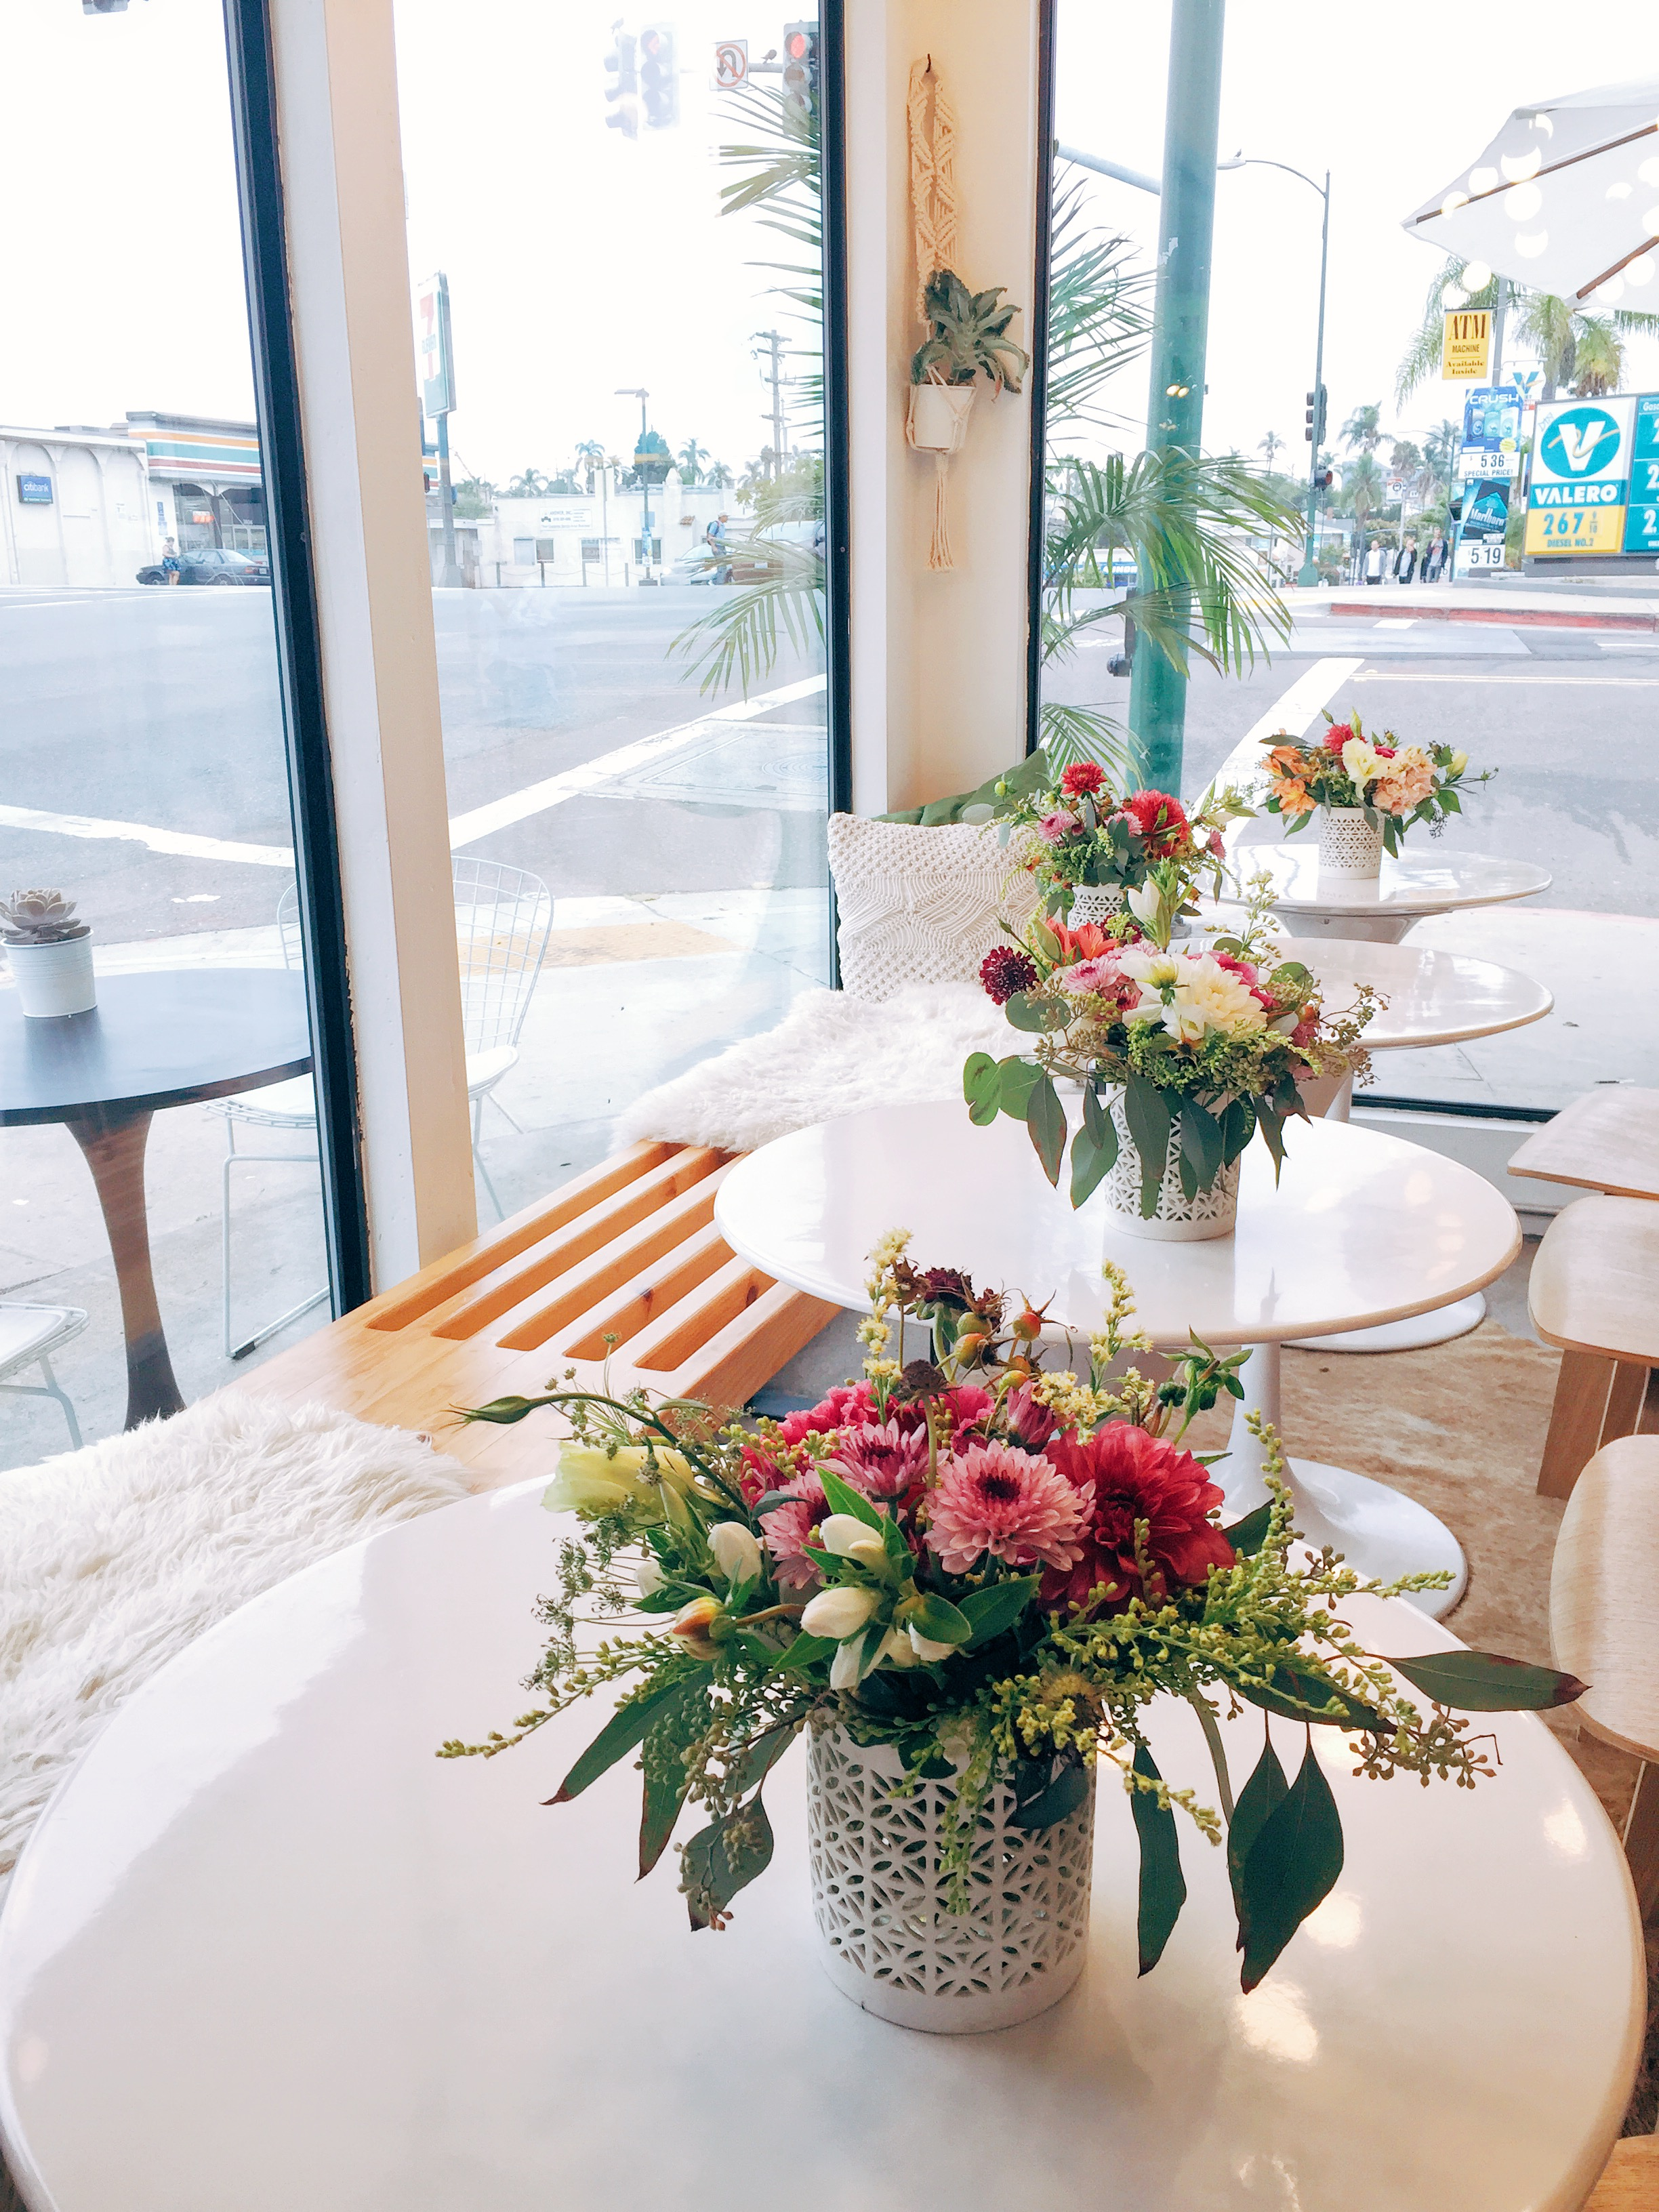 Interior seating at Communal Coffee shop in North Park, San Diego | Places to visit in San Diego